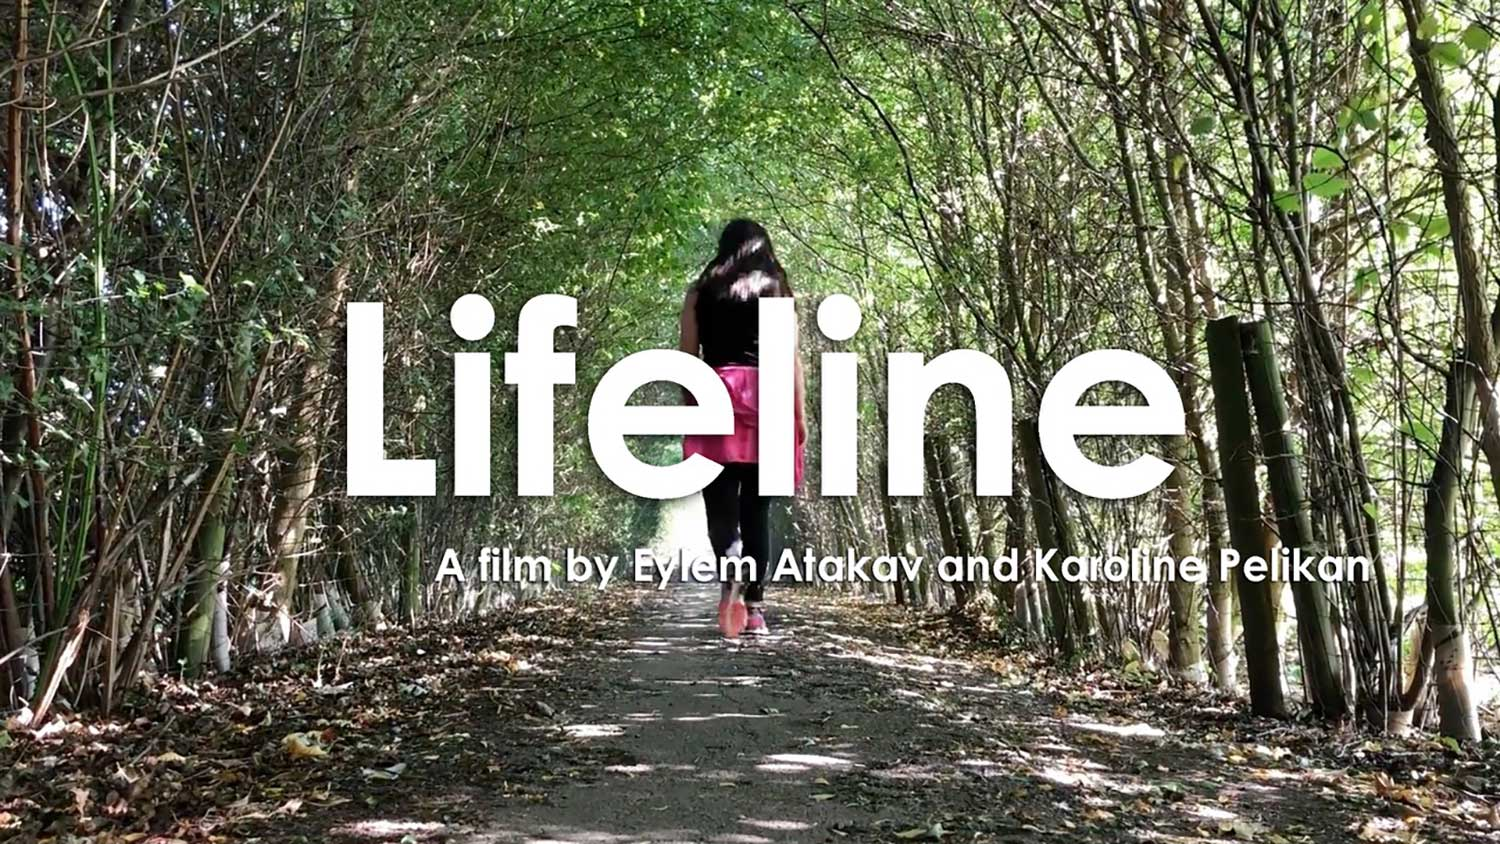 Lifeline - a film by Eylem Atakav and Karoline Pelikan. A woman in the background walks through a forest dappled with sunshine.